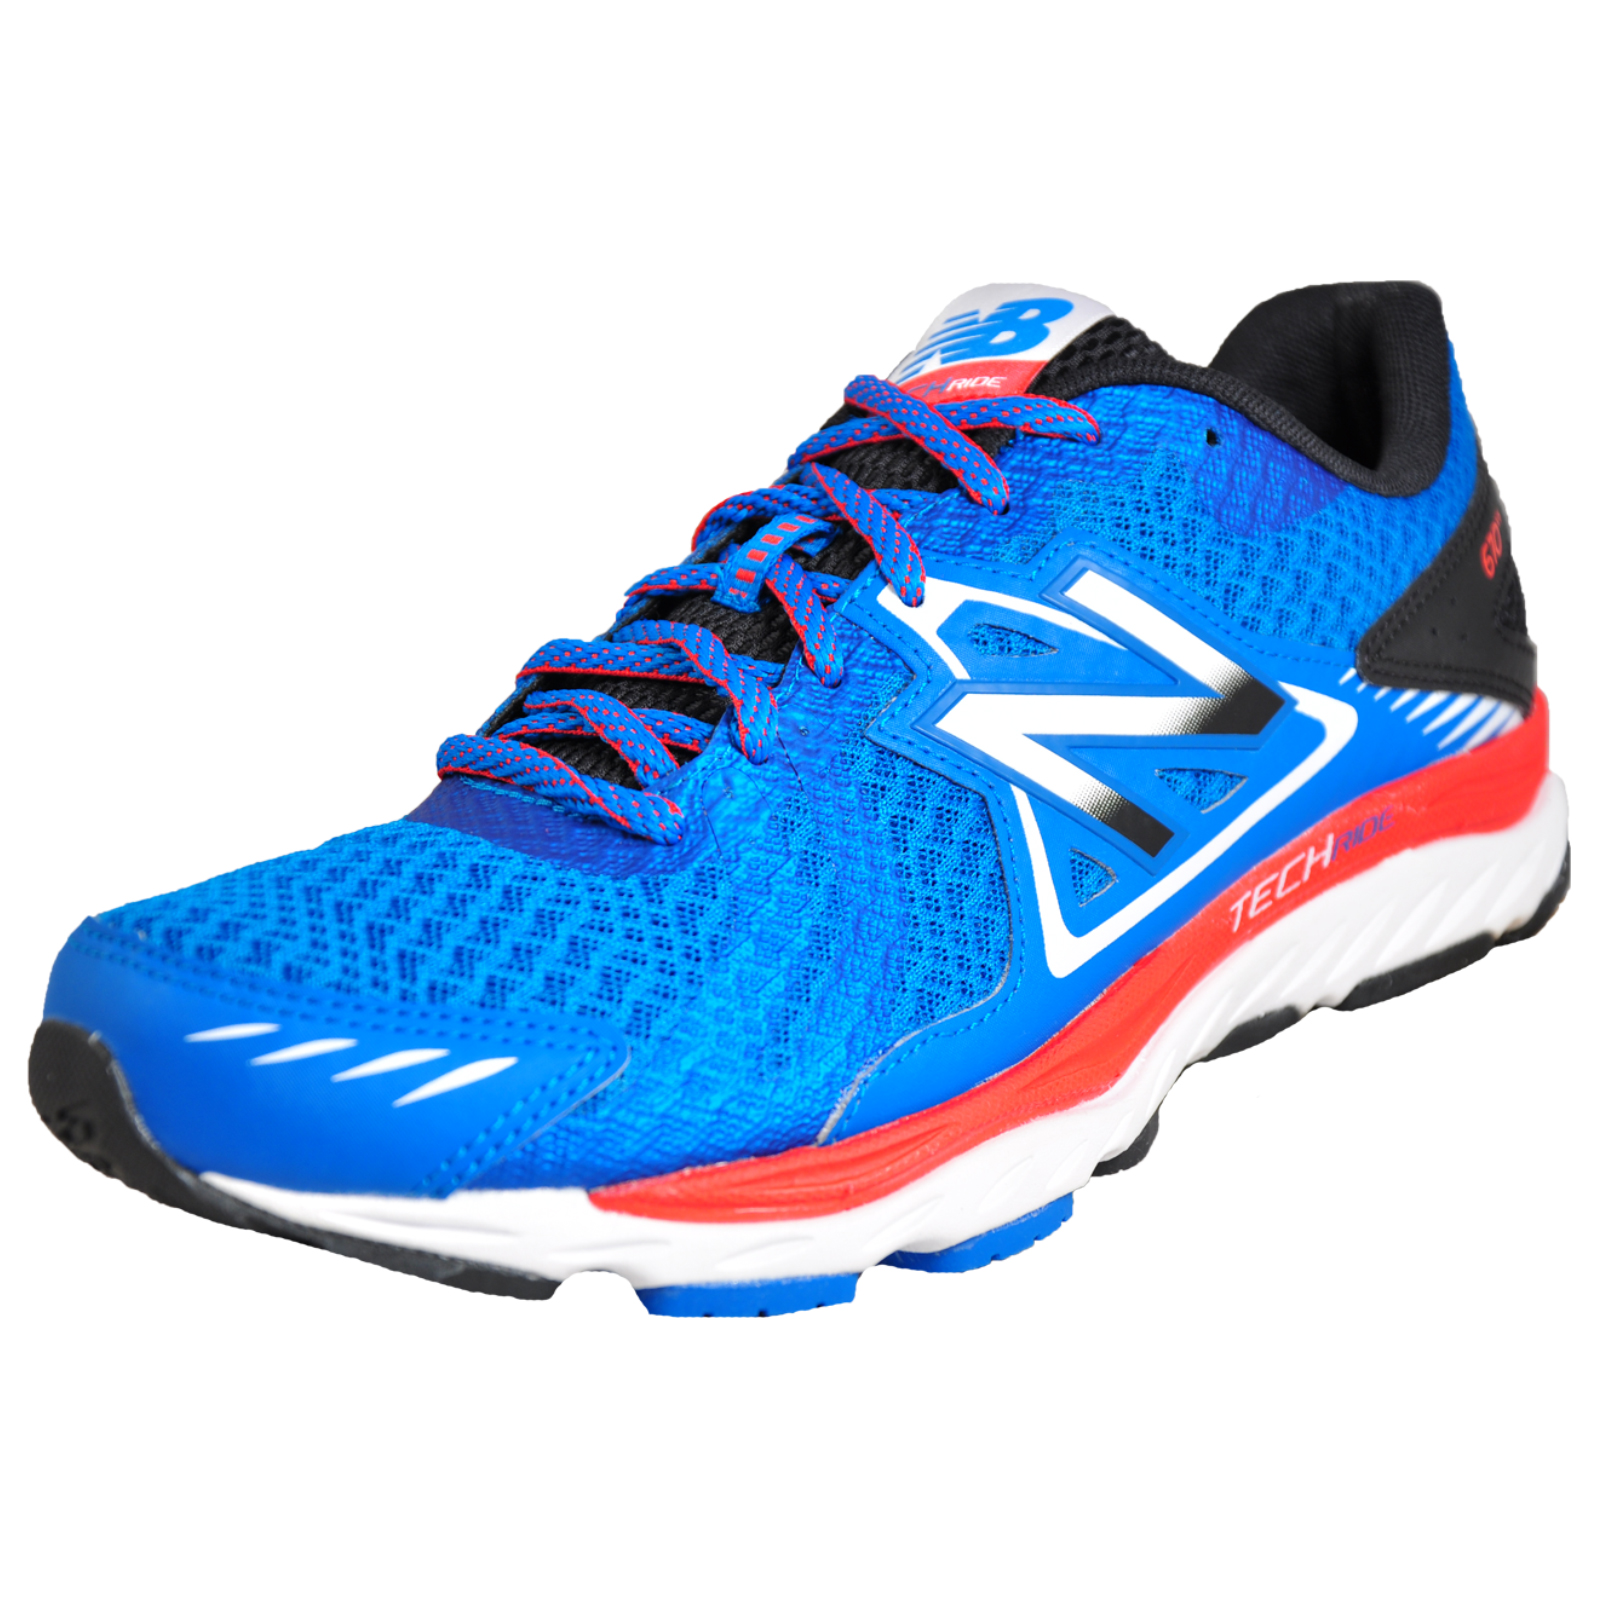 95d22ac3efd5 Details about New Balance 670 v5 Mens Elite Running Shoes Fitness Gym  Trainers Blue